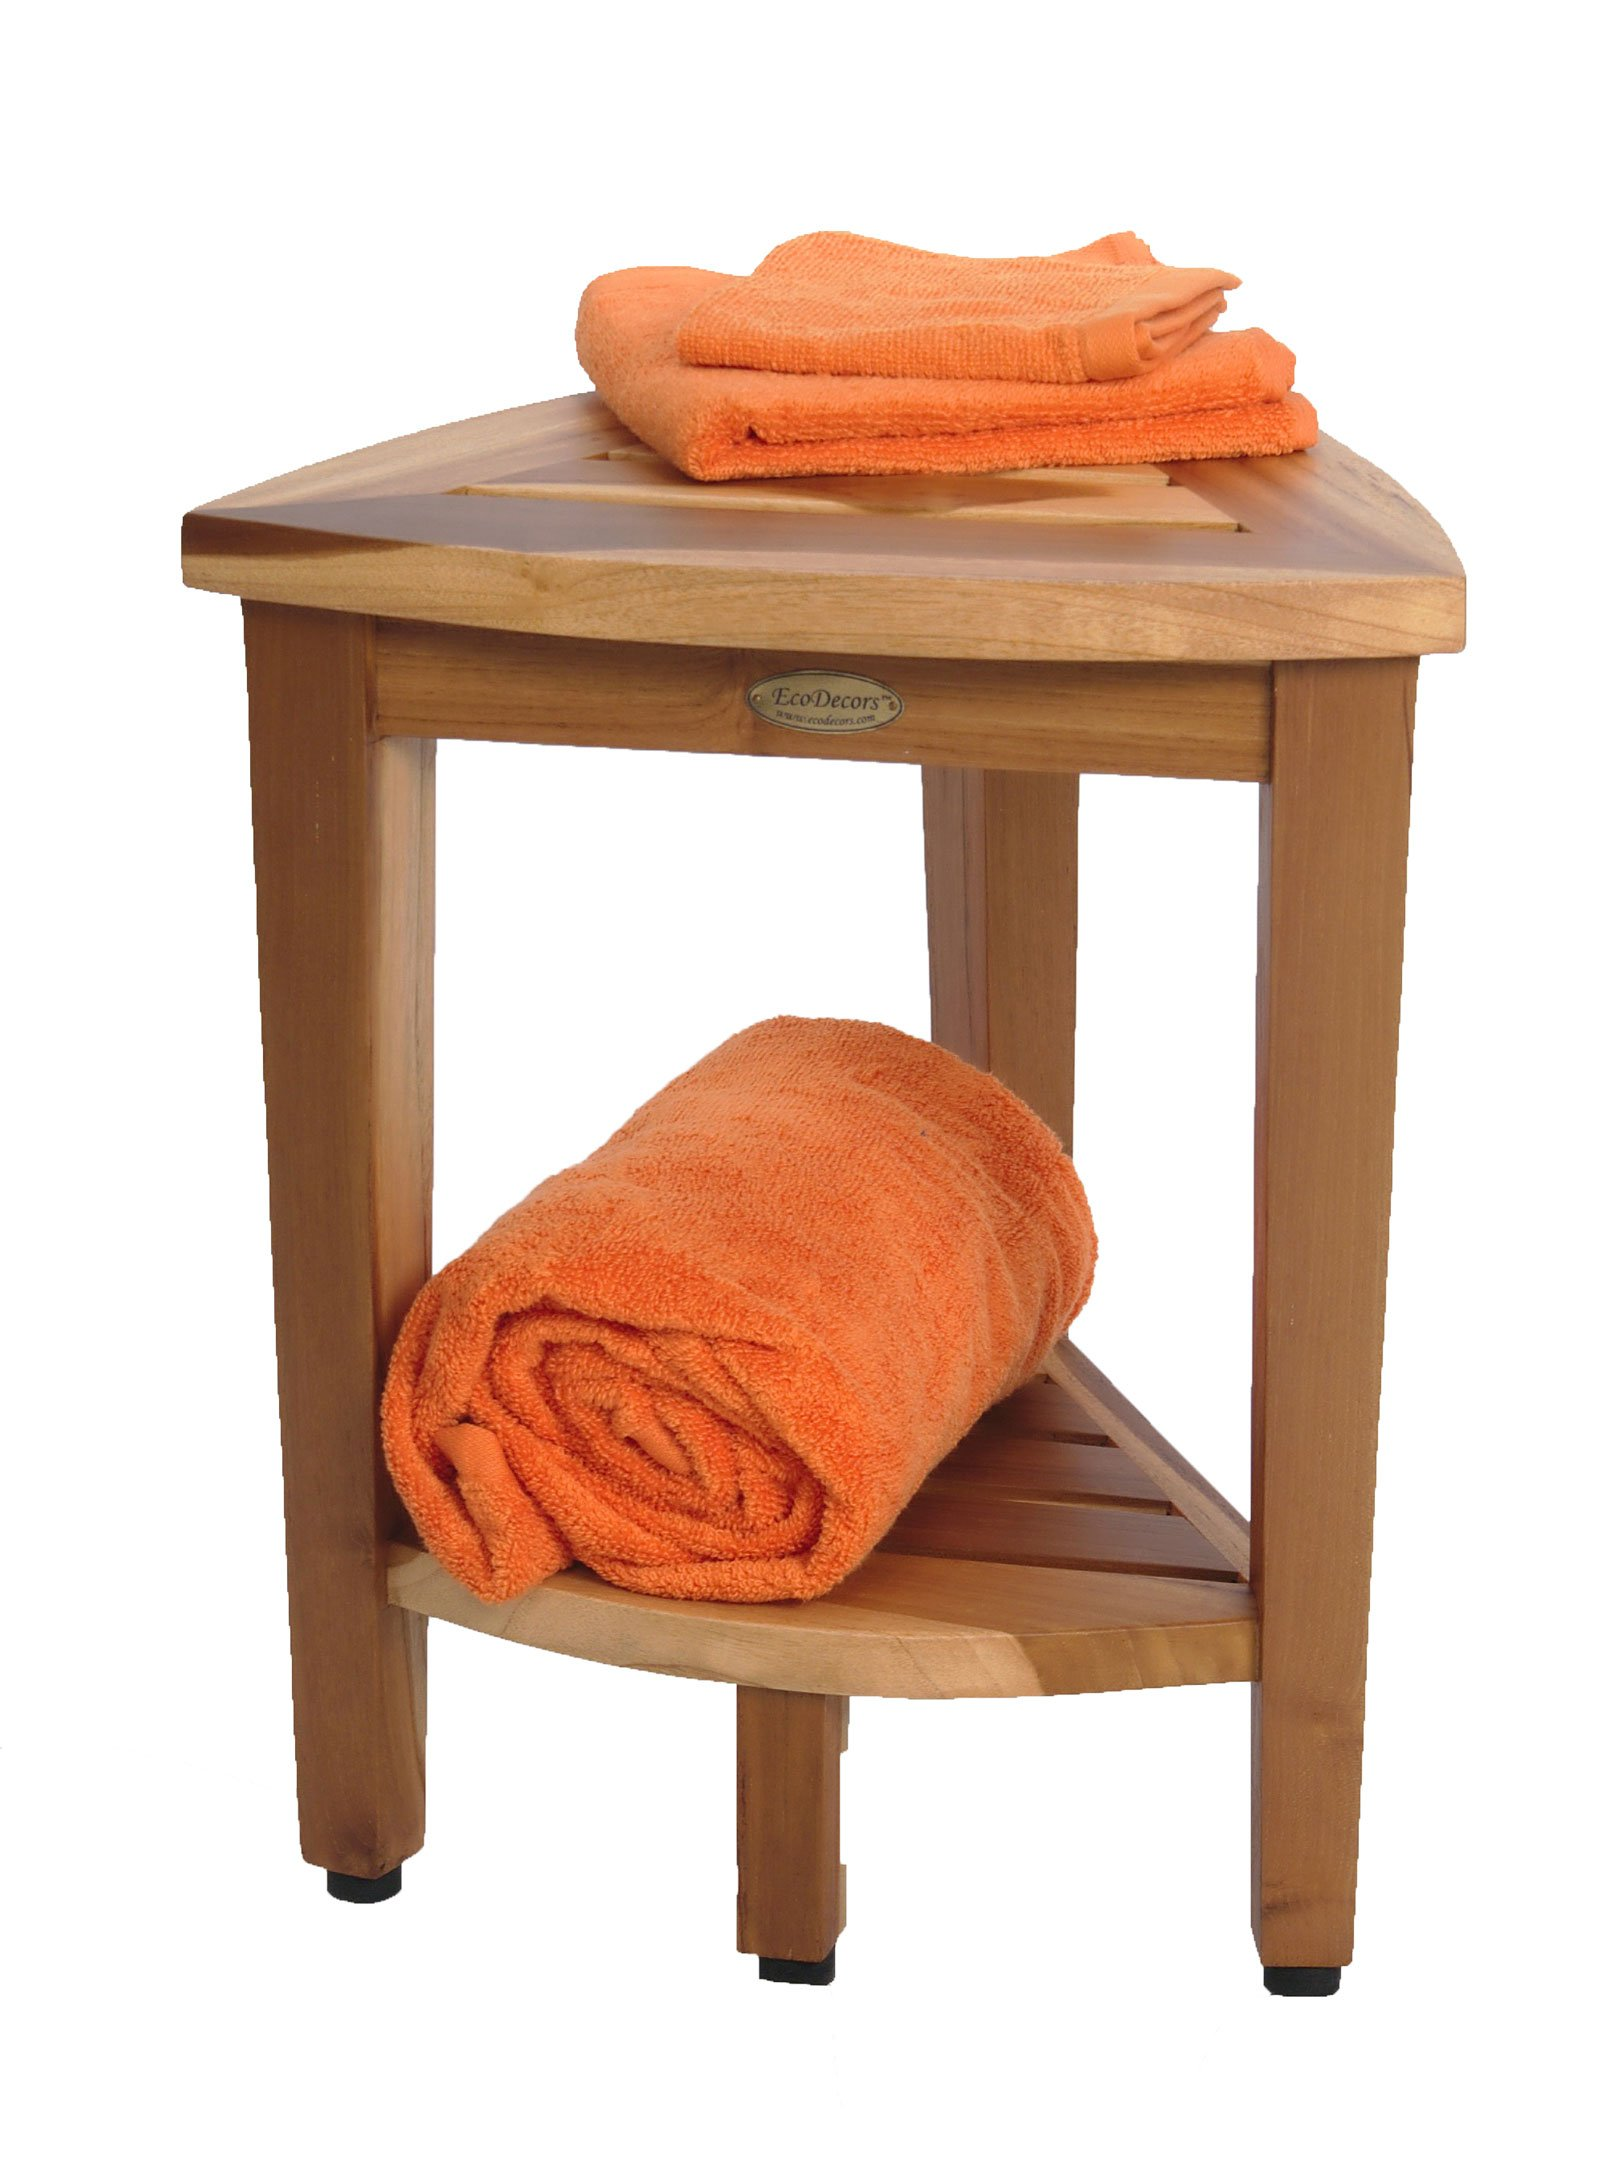 New- 18'' EcoDecors EarthyTeak™-Patent Pending- FULLY ASSEMBLED Compact Teak Corner Shower Bench With Shelf- Shower Sitting, Storage, Shaving Foot Rest by EcoDecors (Image #6)